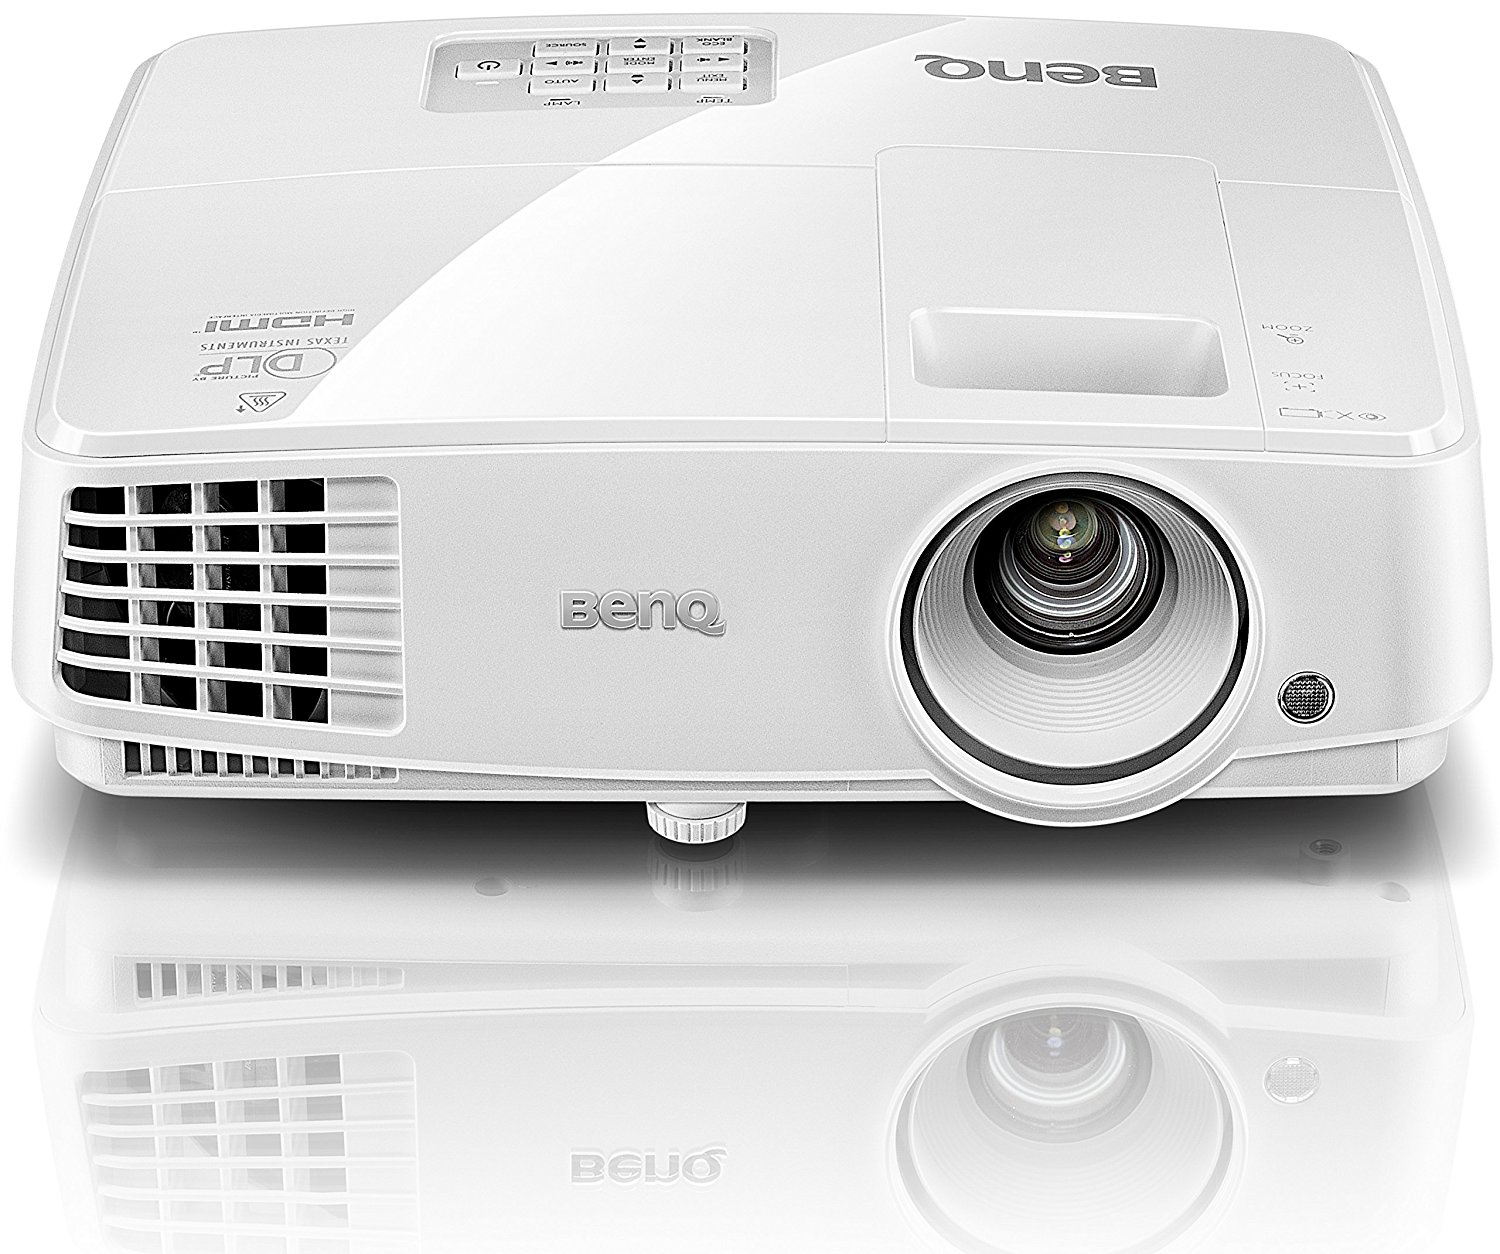 BenQ DLP Full HD 3D Beamer amazon